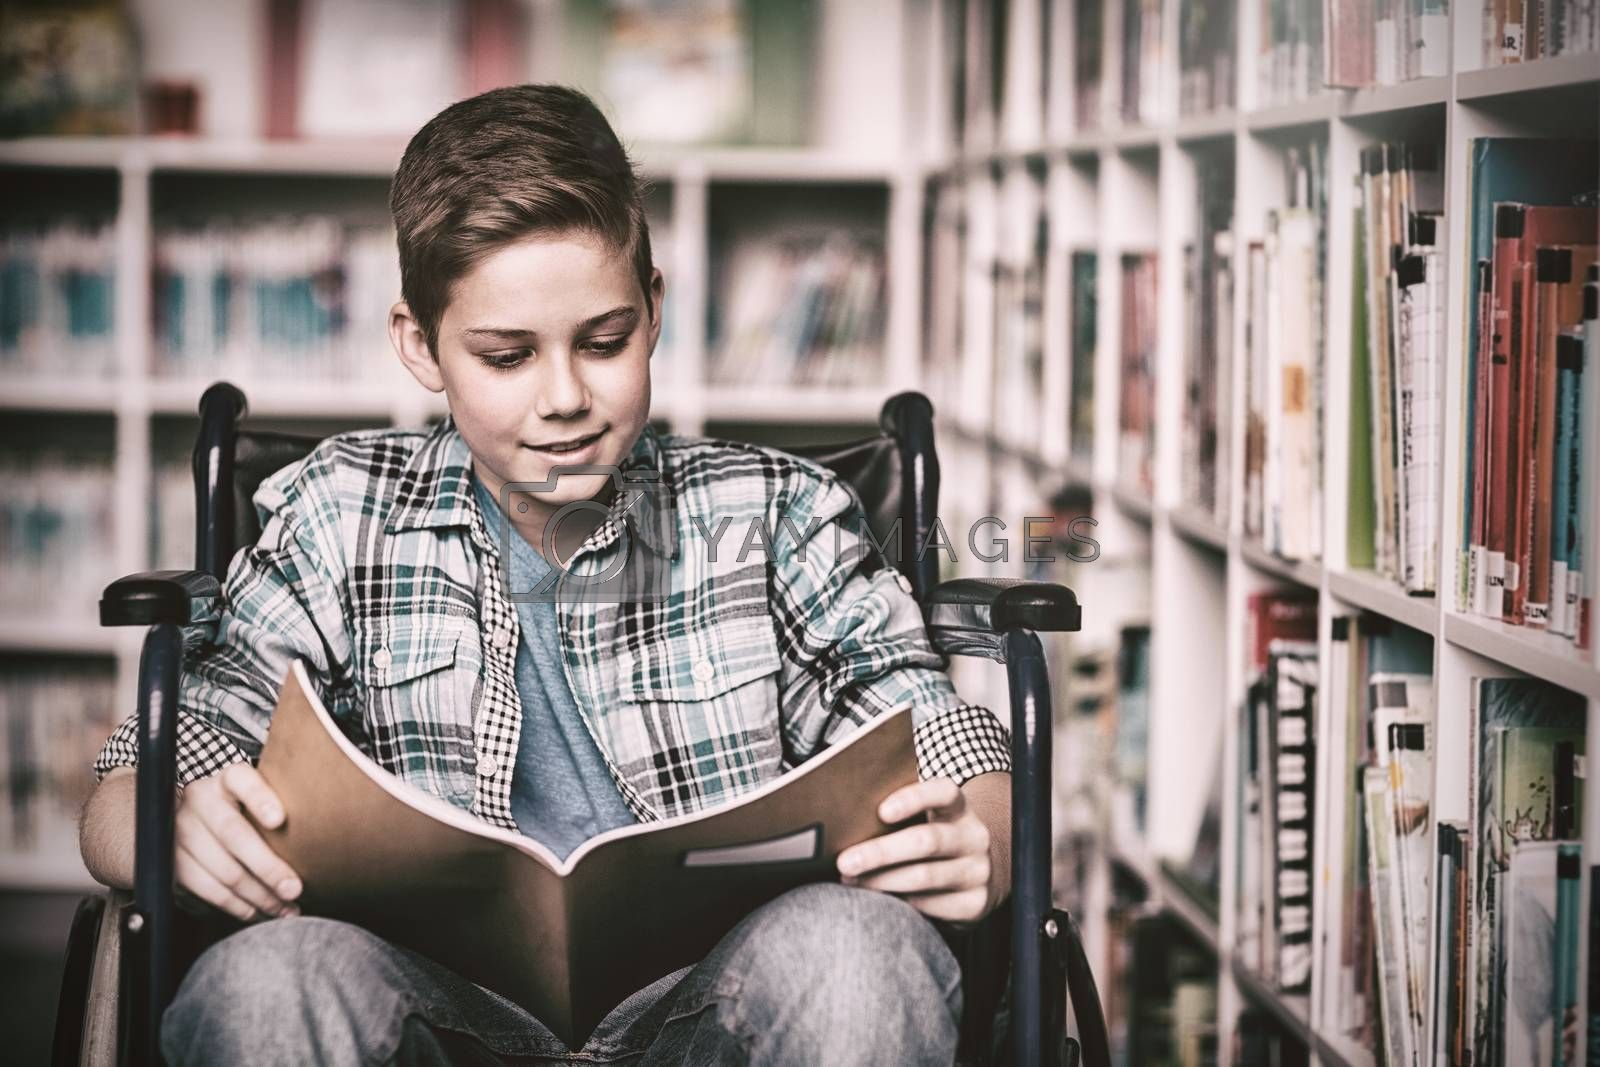 Disabled schoolboy reading book in library by Wavebreakmedia